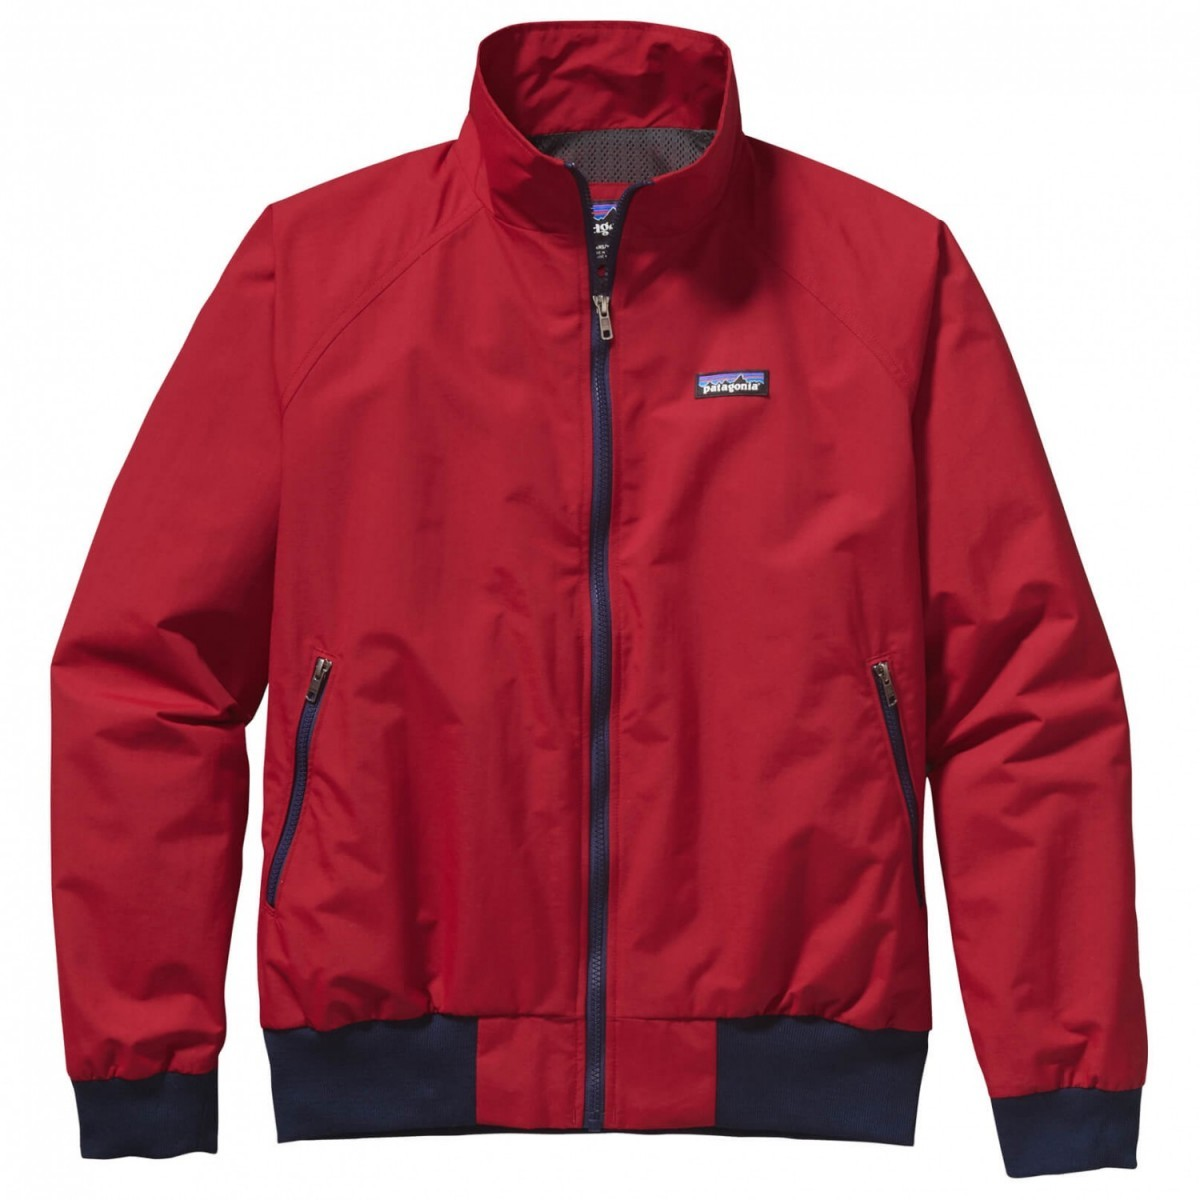 新規購入 パタゴニア Red) Baggies パタゴニア Jacket (Classic (Classic Red), 雑貨屋 PLUS:657b57eb --- canoncity.azurewebsites.net